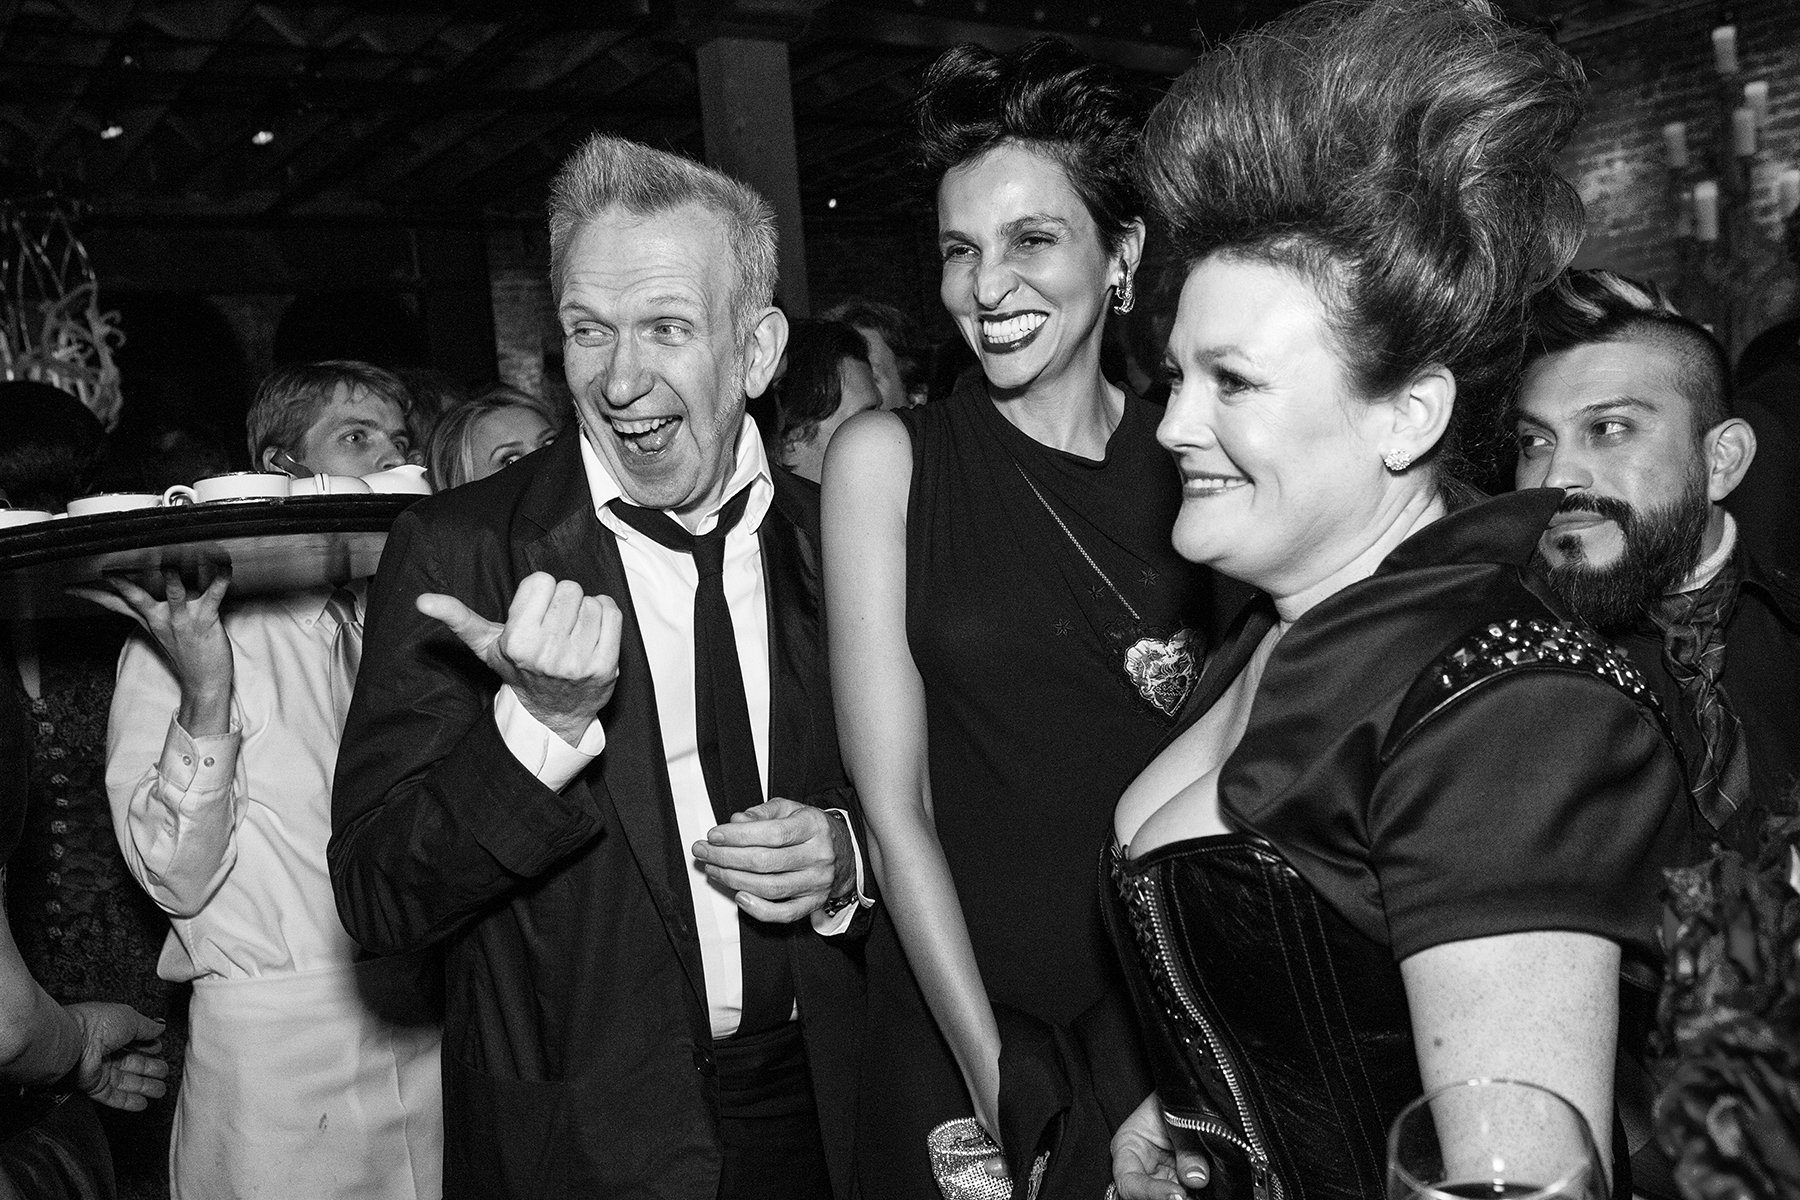 Fashion designer Jean Paul Gaultier, his muse and former model Farida Khelfa and society columnist Jennifer Raiser (left to right) enjoy a private party in Gaultier's honor to celebrate the opening of an exhibit of his work at the de Young Museum in San Francisco, Calif., on Thursday, March 22, 2012.This photograph is of a candid moment and was not directed in any way.